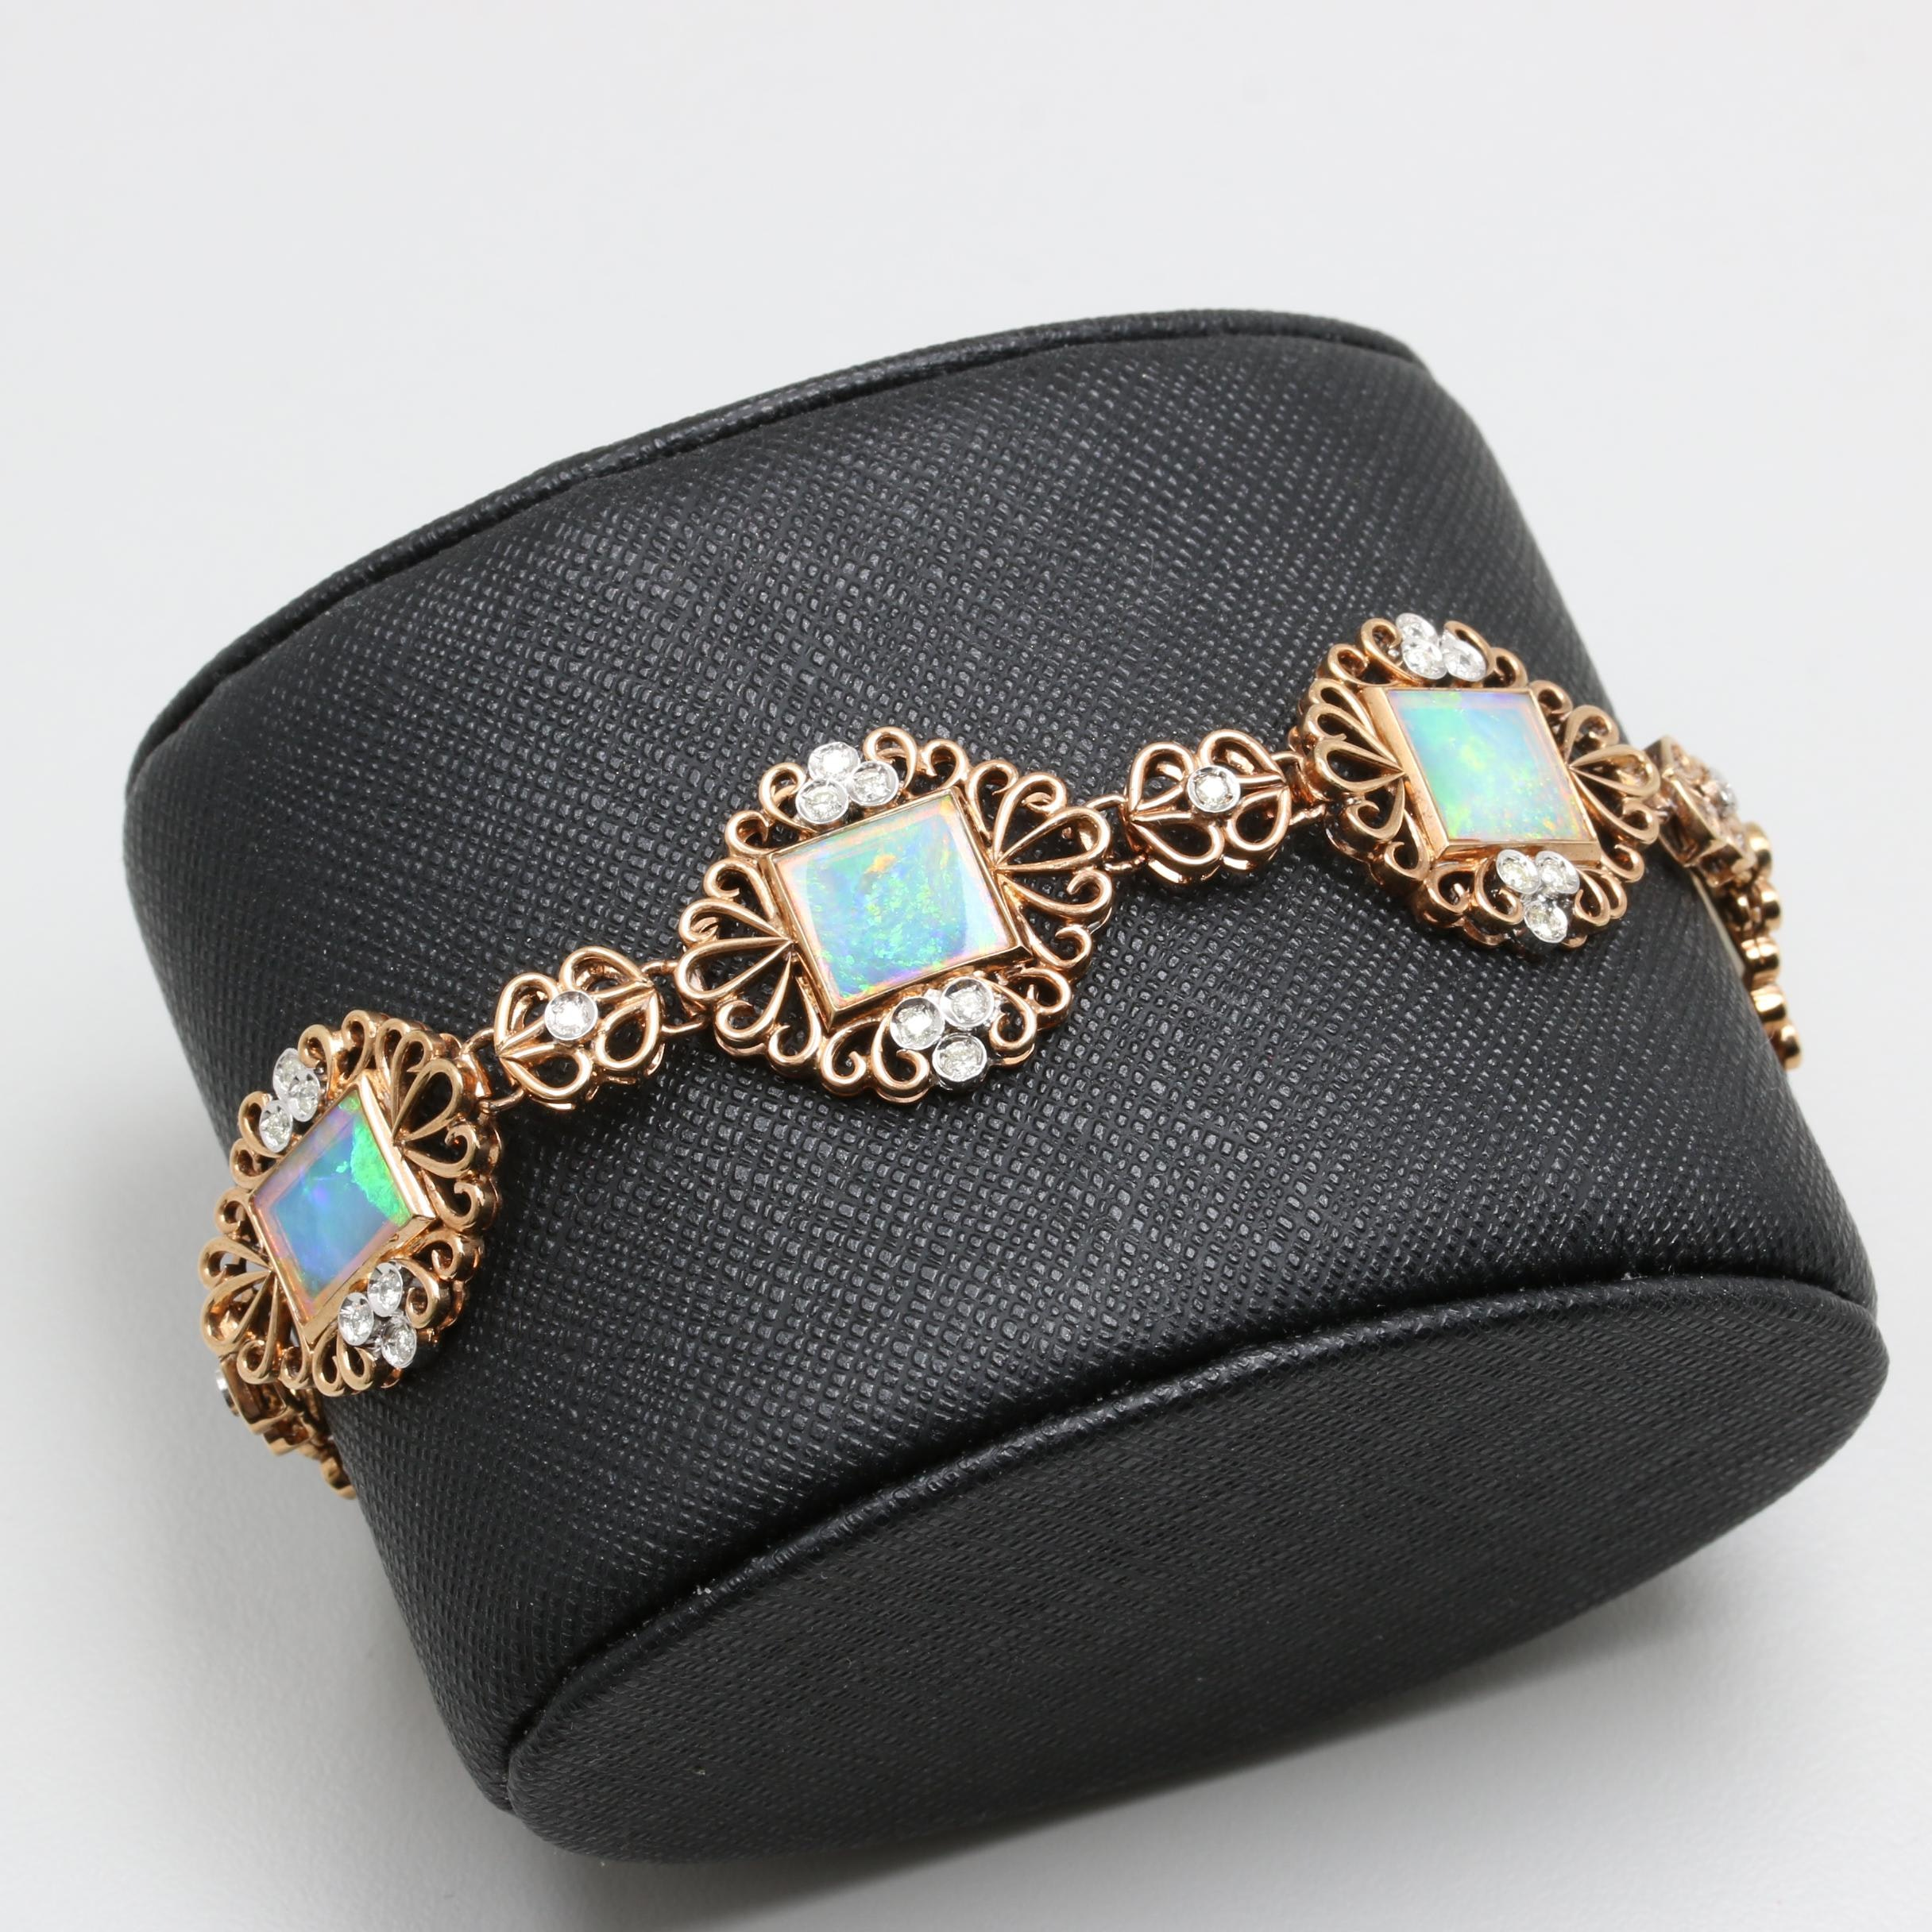 Vintage 14K Yellow Gold Opal and Diamond Bracelet with White Gold Accents